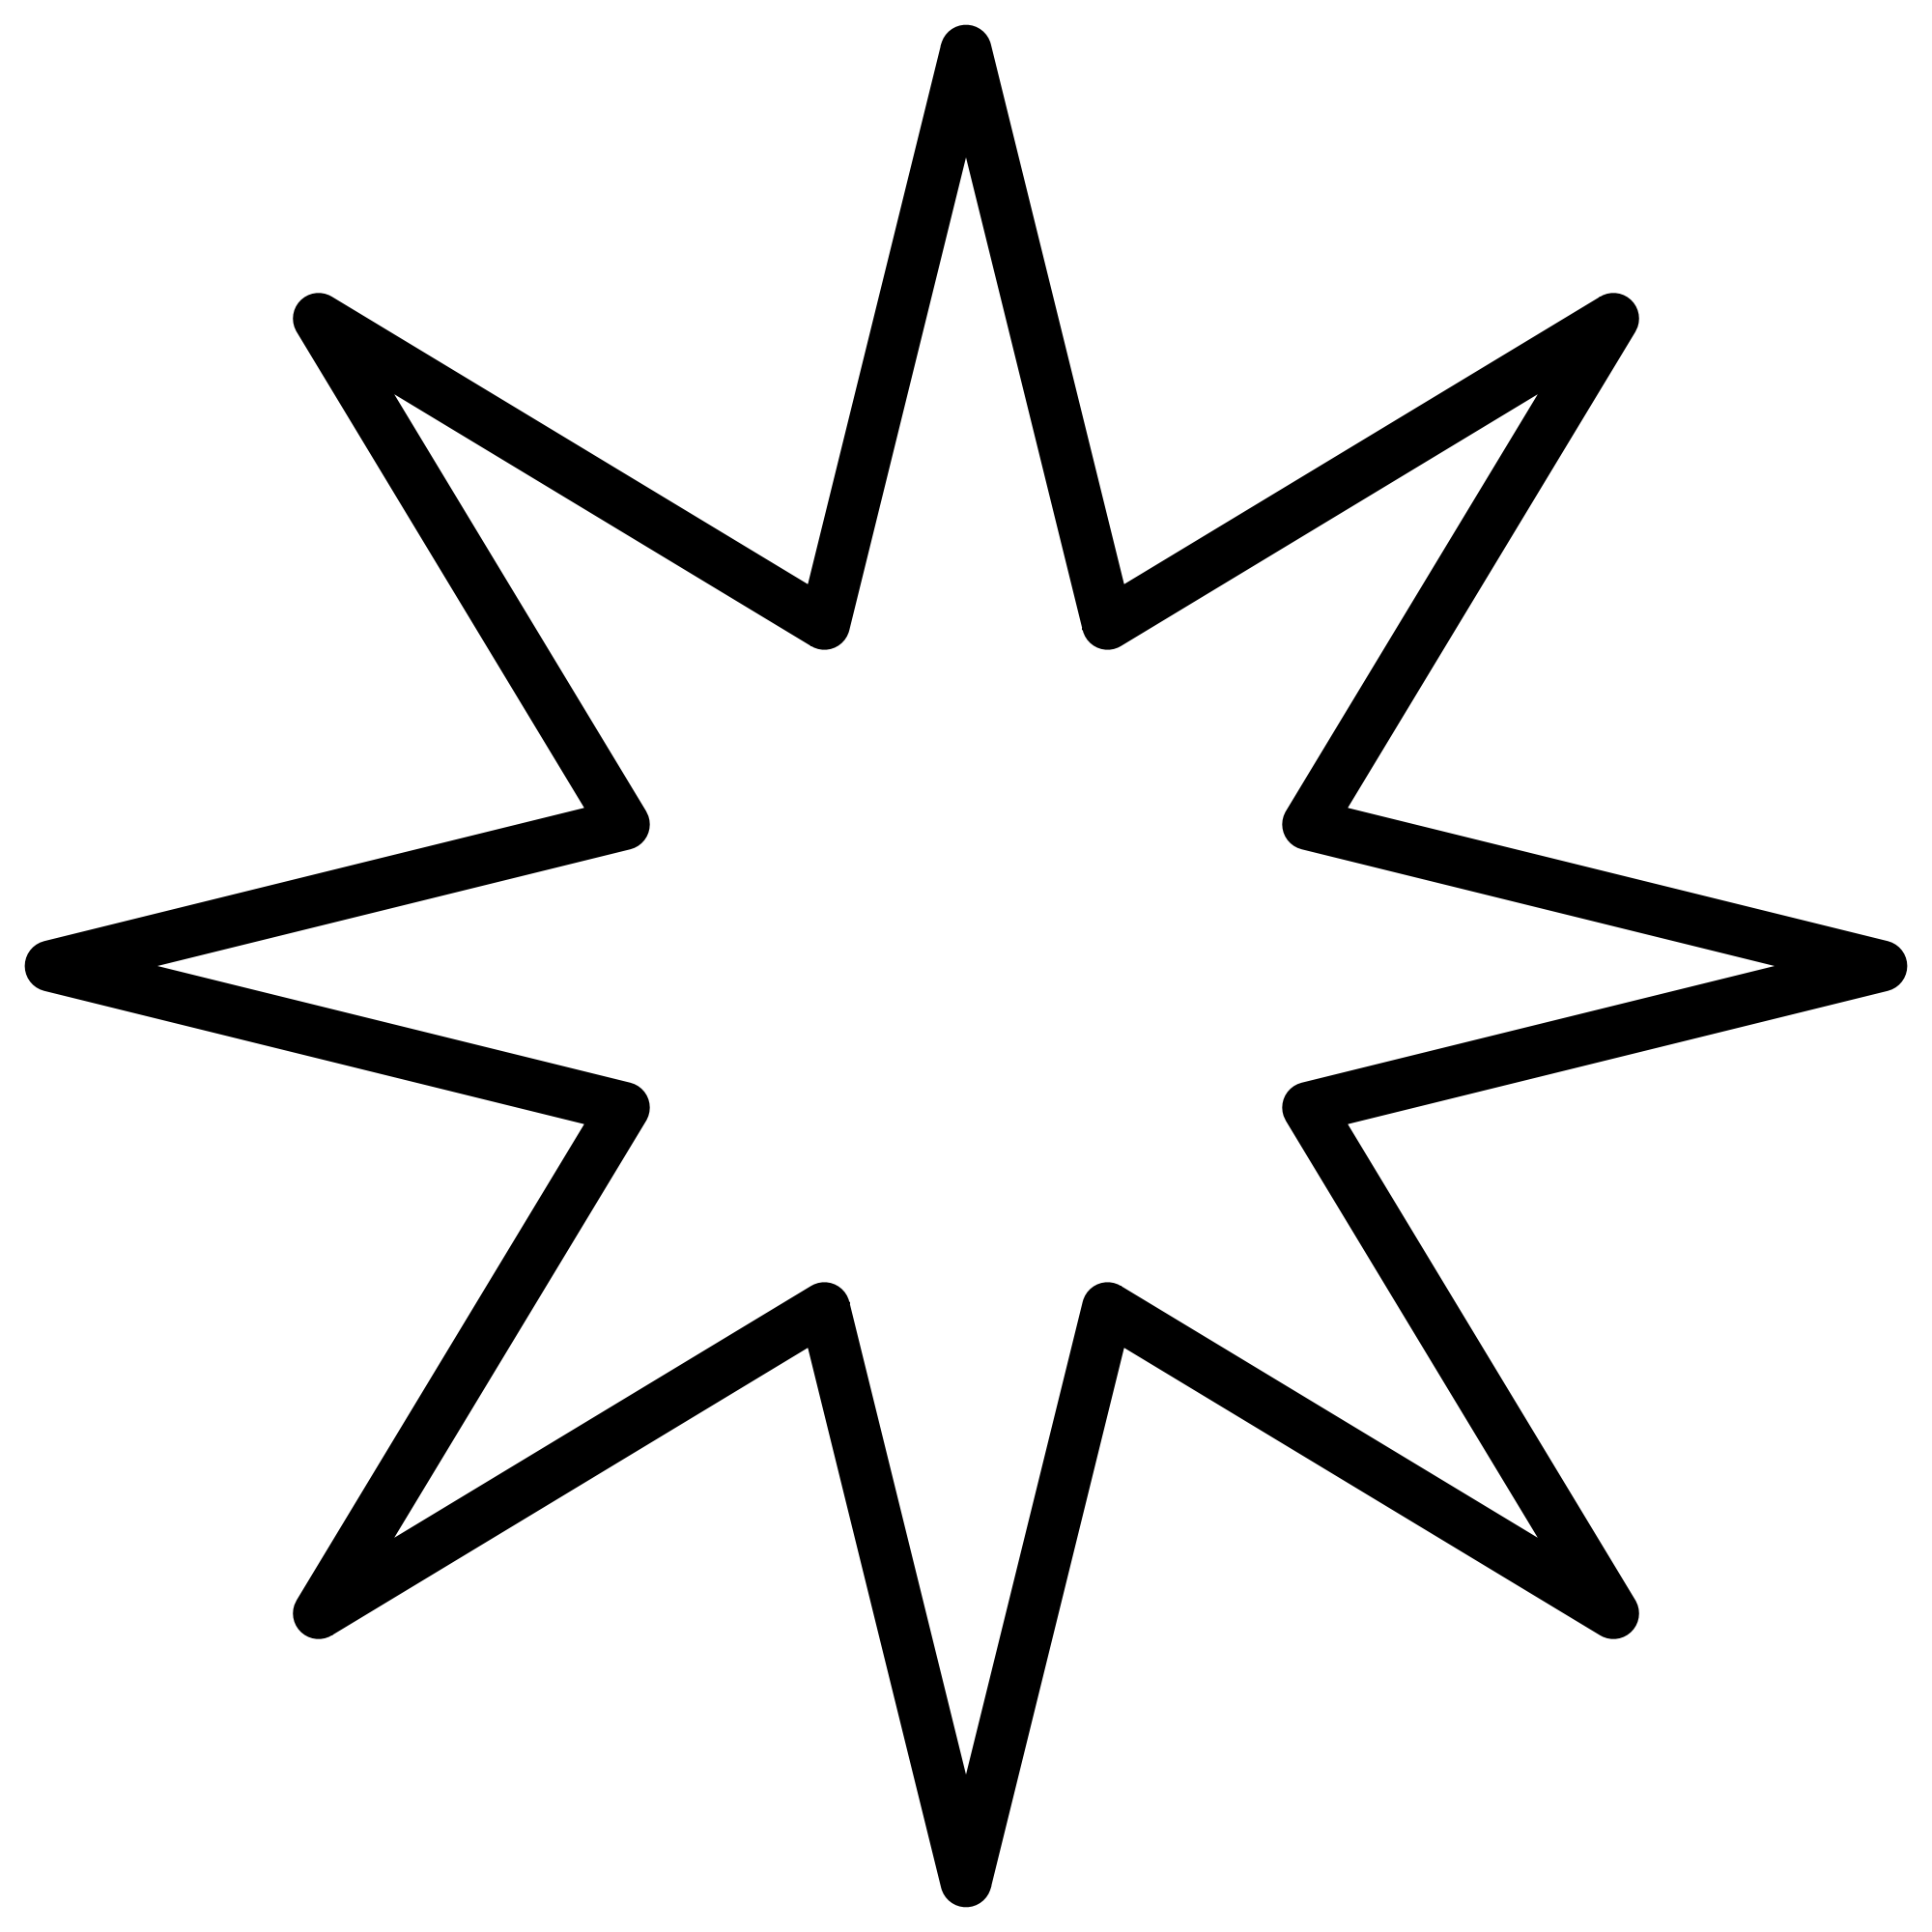 4 point star clipart black and white jpg library download File:8-Point-Star black void2.svg - Wikimedia Commons jpg library download